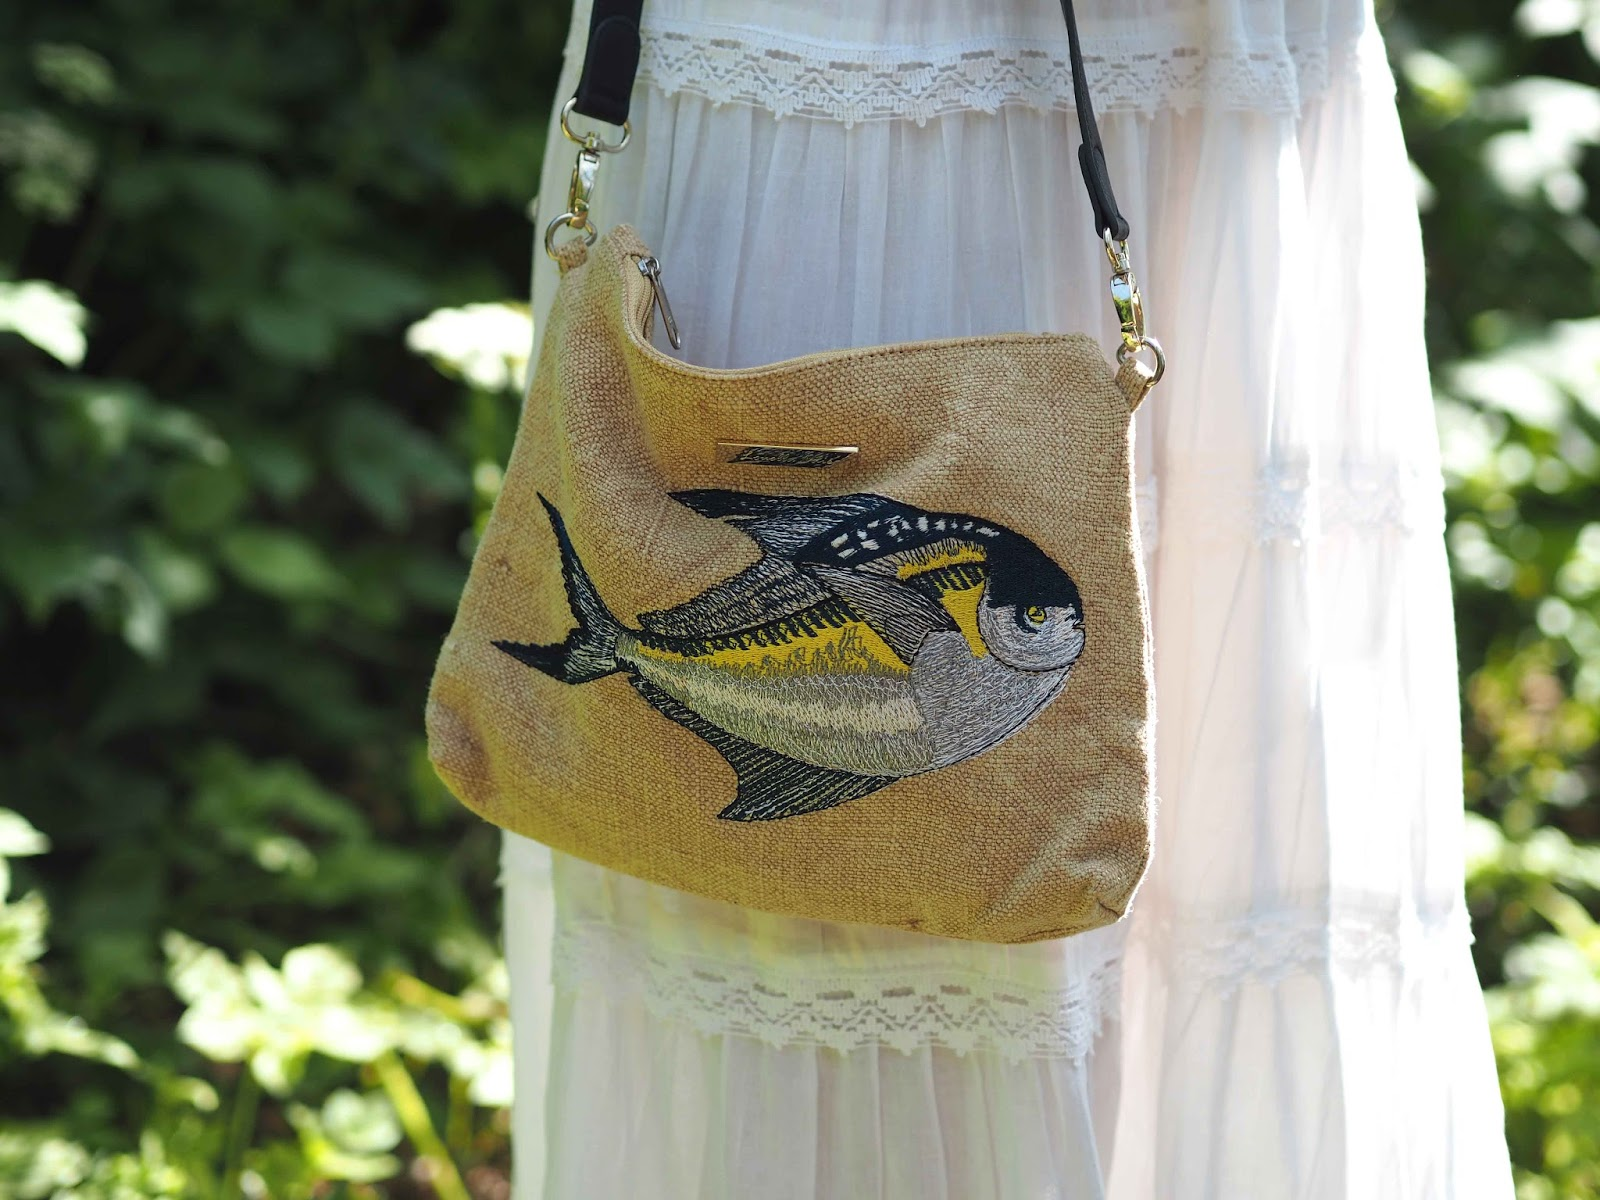 Embroidered pomfret fish, Slouchy pouch, Louelle Odie